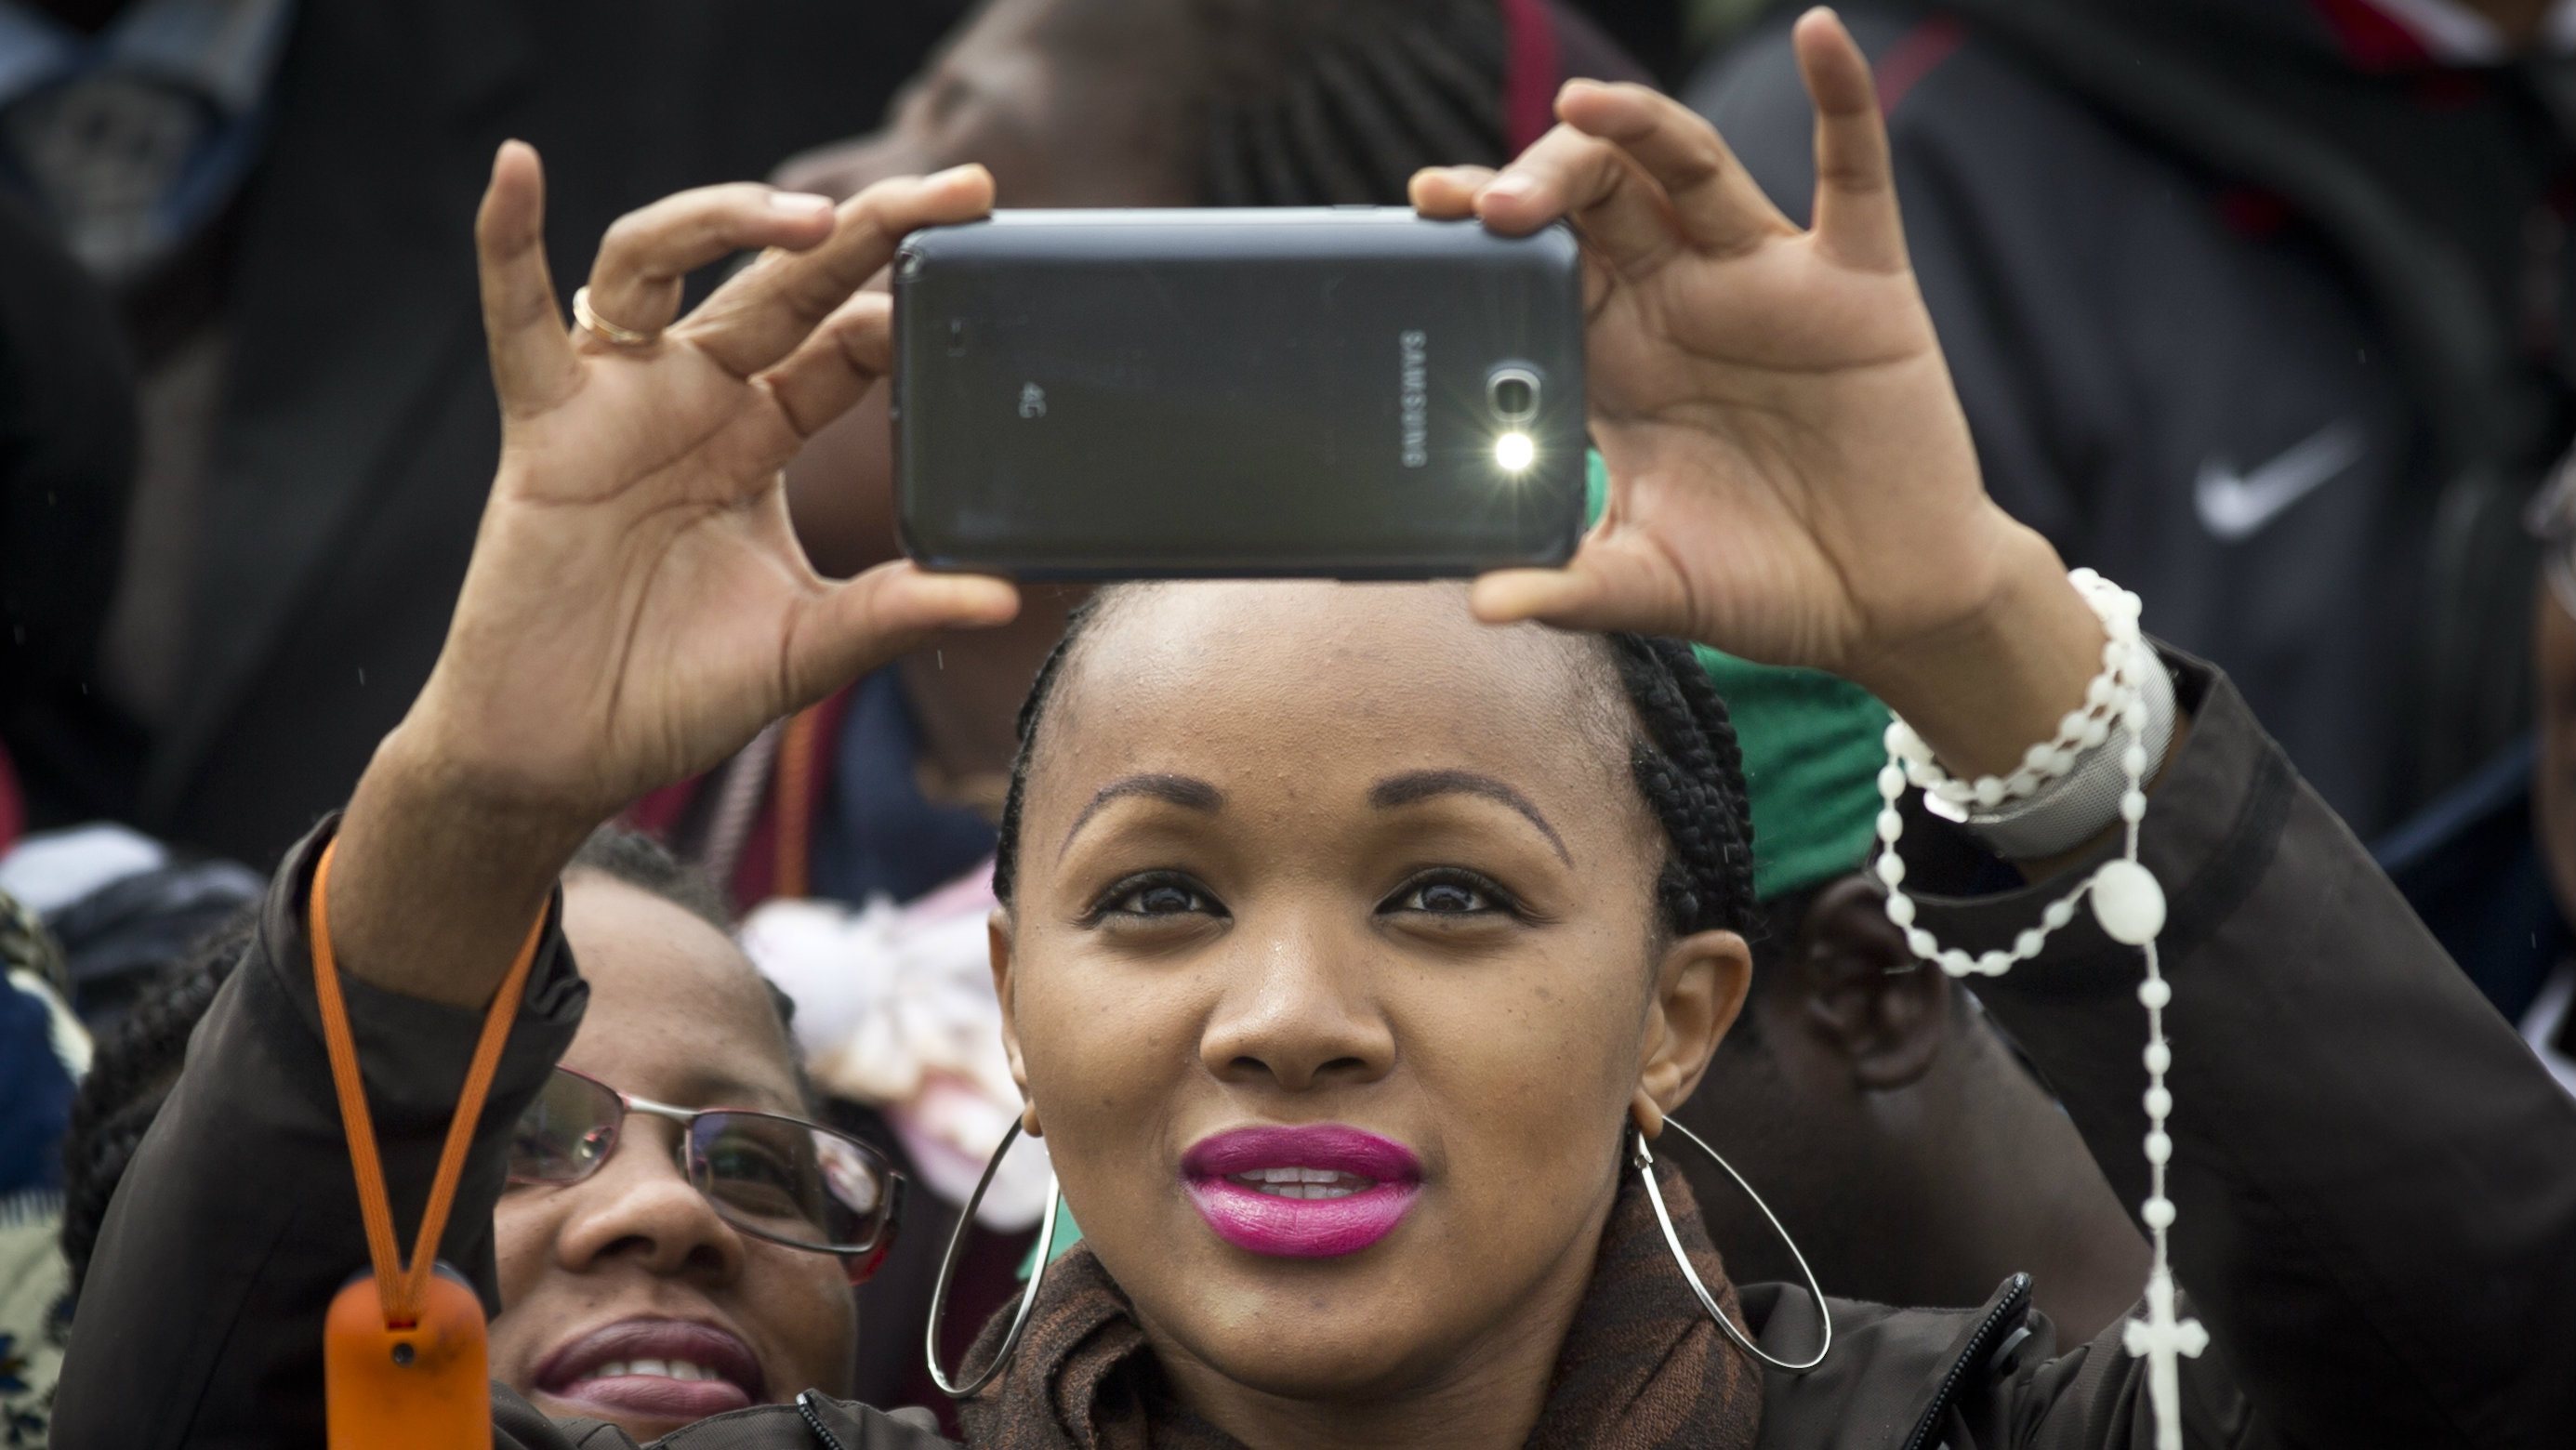 A Kenyan Catholic woman takes photographs with her smartphone as she awaits the arrival of Pope Francis to hold a Mass at the campus of the University of Nairobi in Kenya Thursday, Nov. 26, 2015. The Argentine pope, who has never been to Africa before, was treated to ululating Swahili singers, swaying nuns, Maasai tribesmen and traditional dancers at the Mass on the grounds of the University of Nairobi.